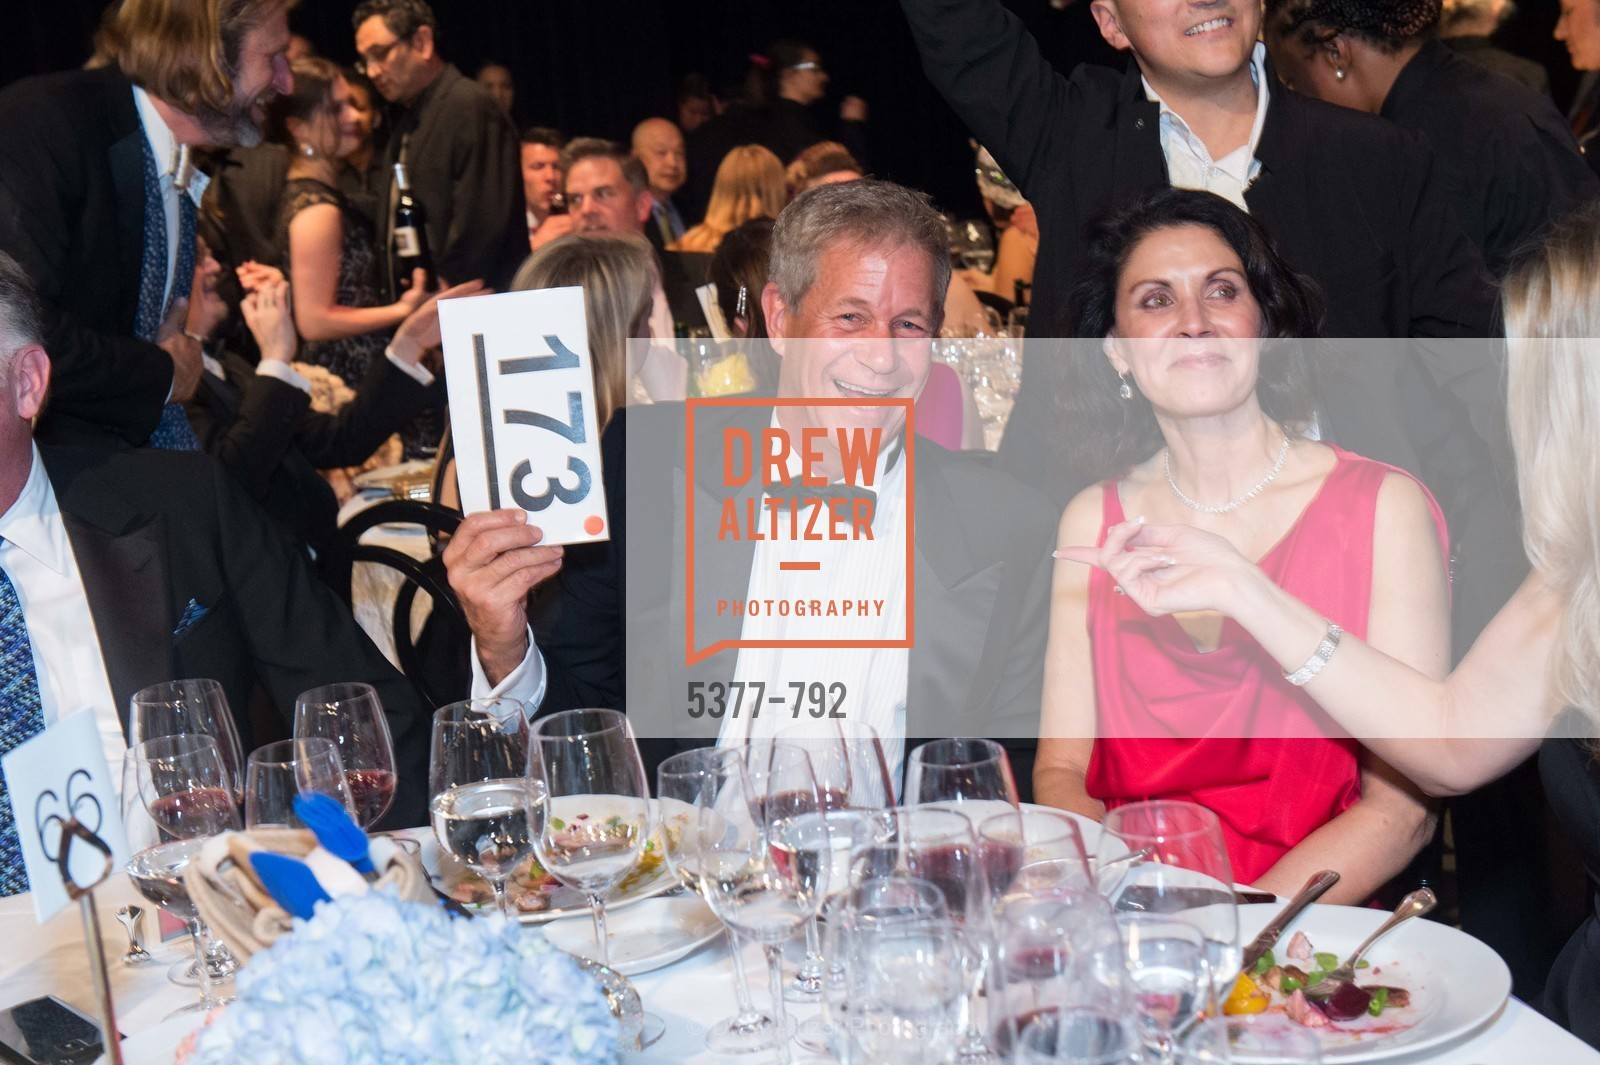 Steve Chess, Lois Chess, MEALS ON WHEELS OF SAN FRANCISCO'S 28th Annual Star Chefs and Vintners Gala, US, April 20th, 2015,Drew Altizer, Drew Altizer Photography, full-service agency, private events, San Francisco photographer, photographer california